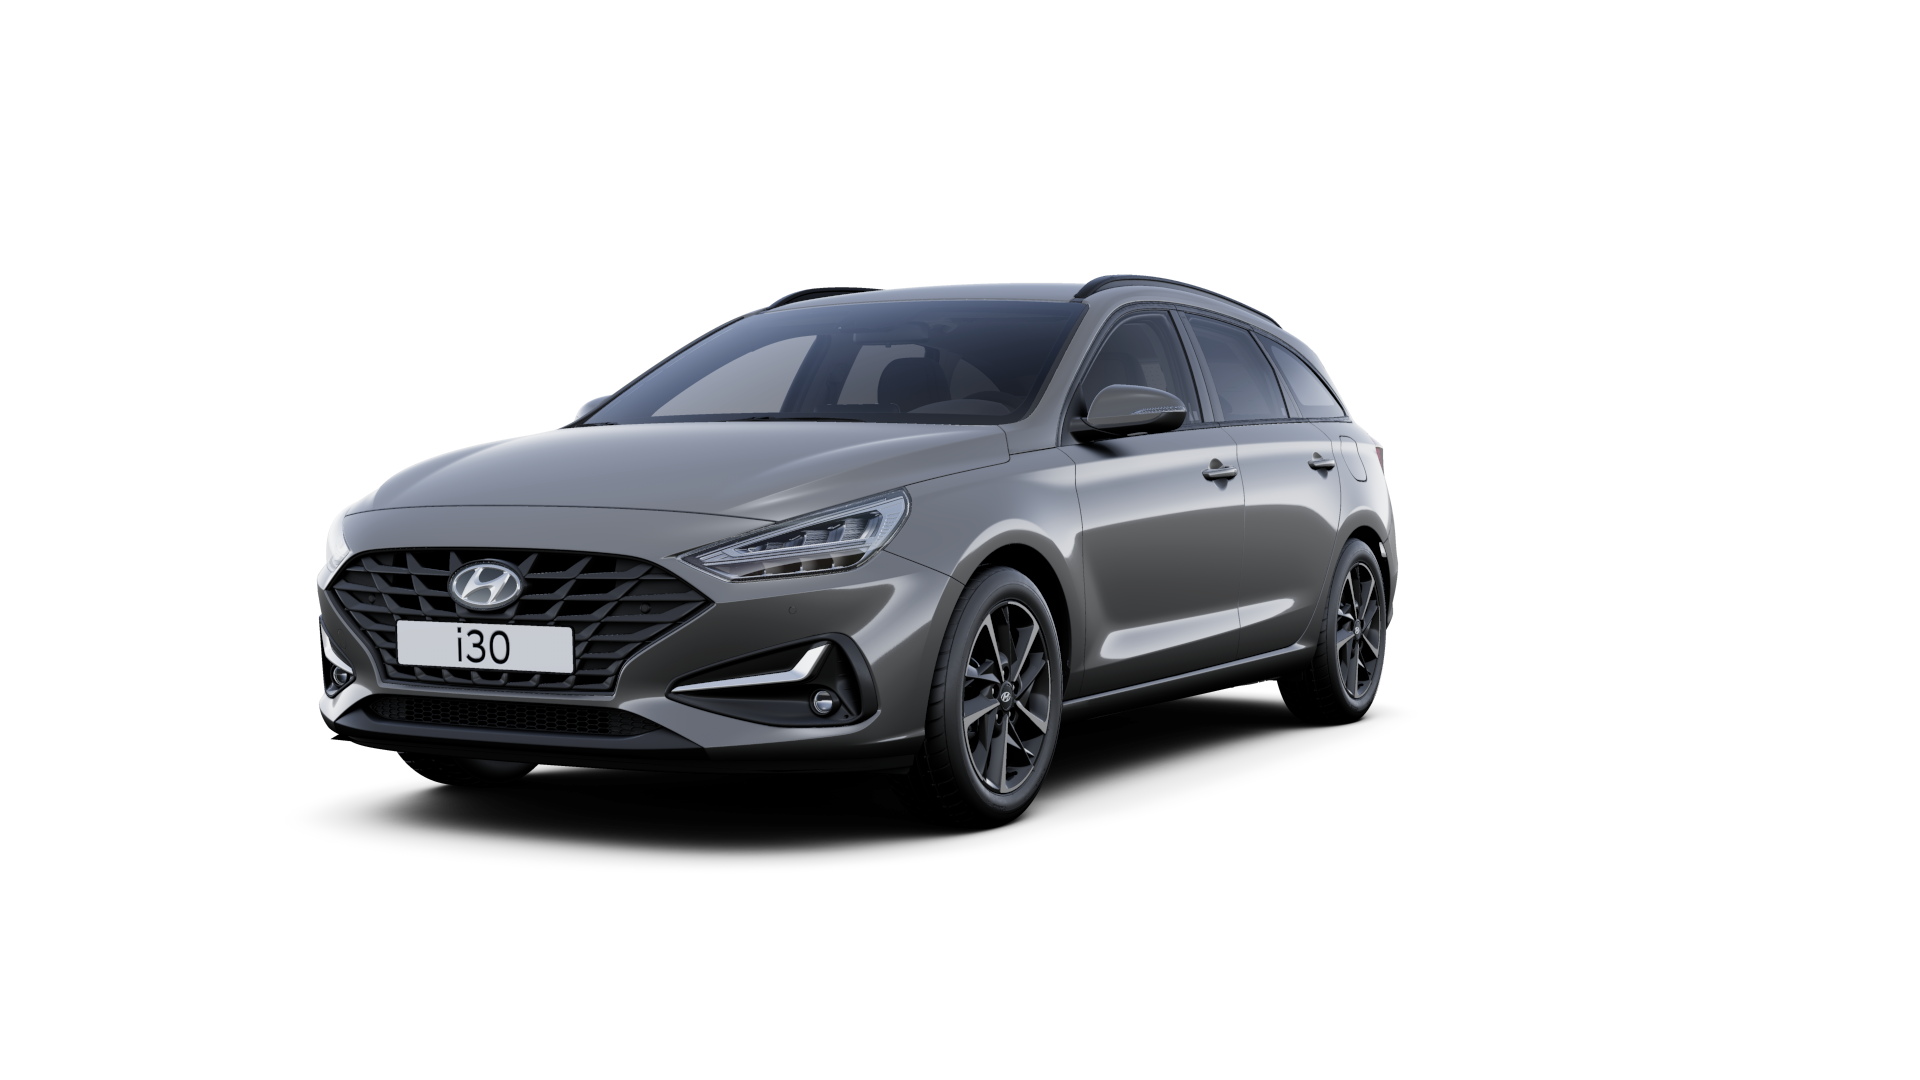 Front side view of the new Hyundai i30 Wagon in the colour Amazon Grey.